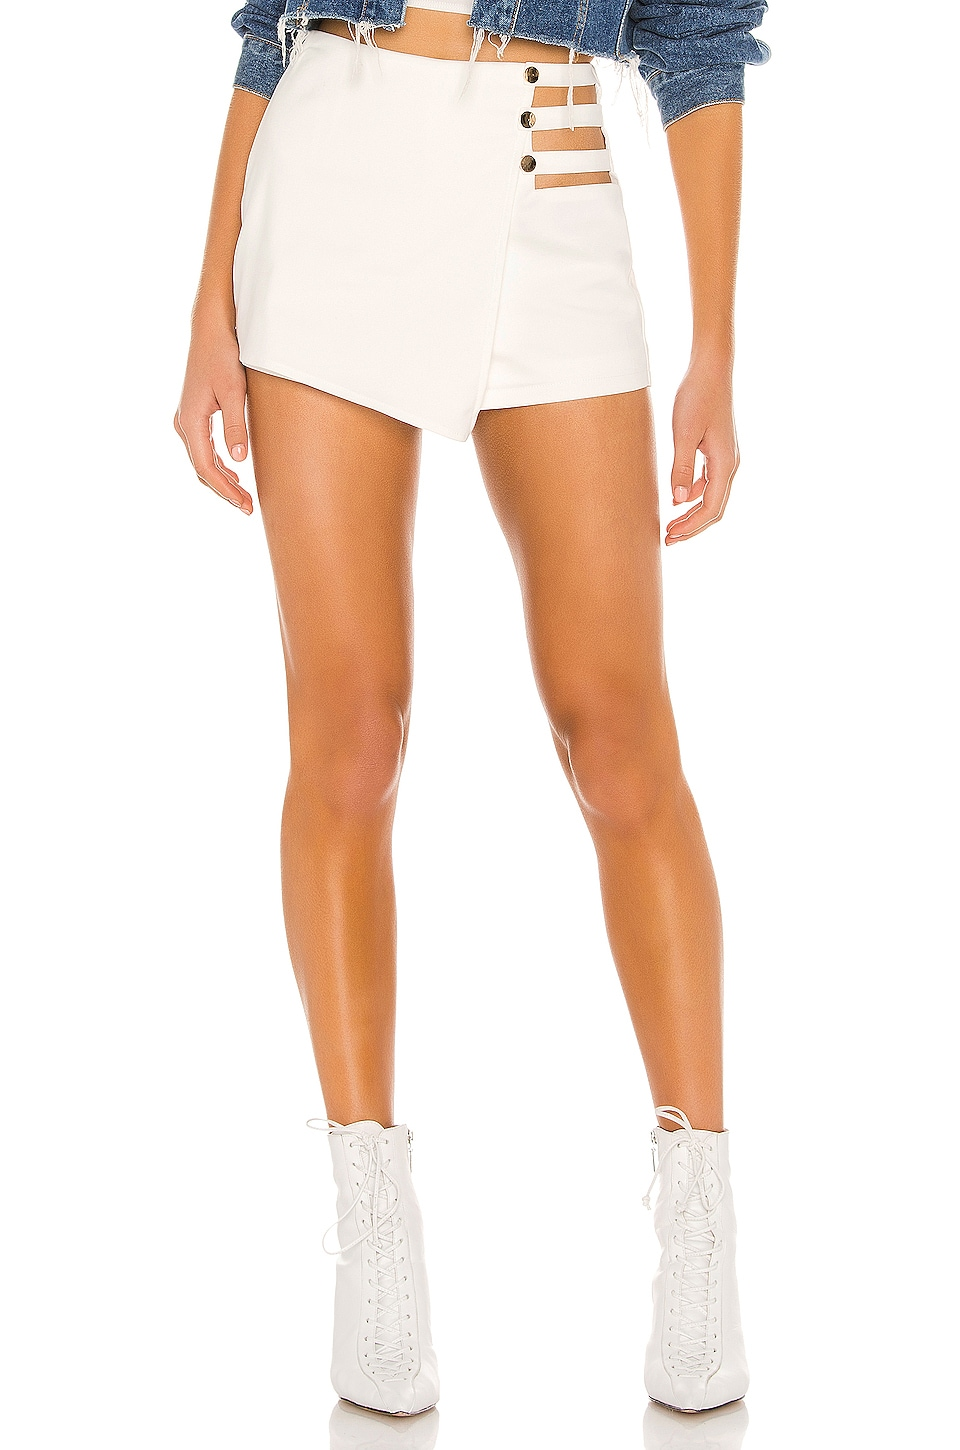 superdown Hillary Cut Out Skort in White